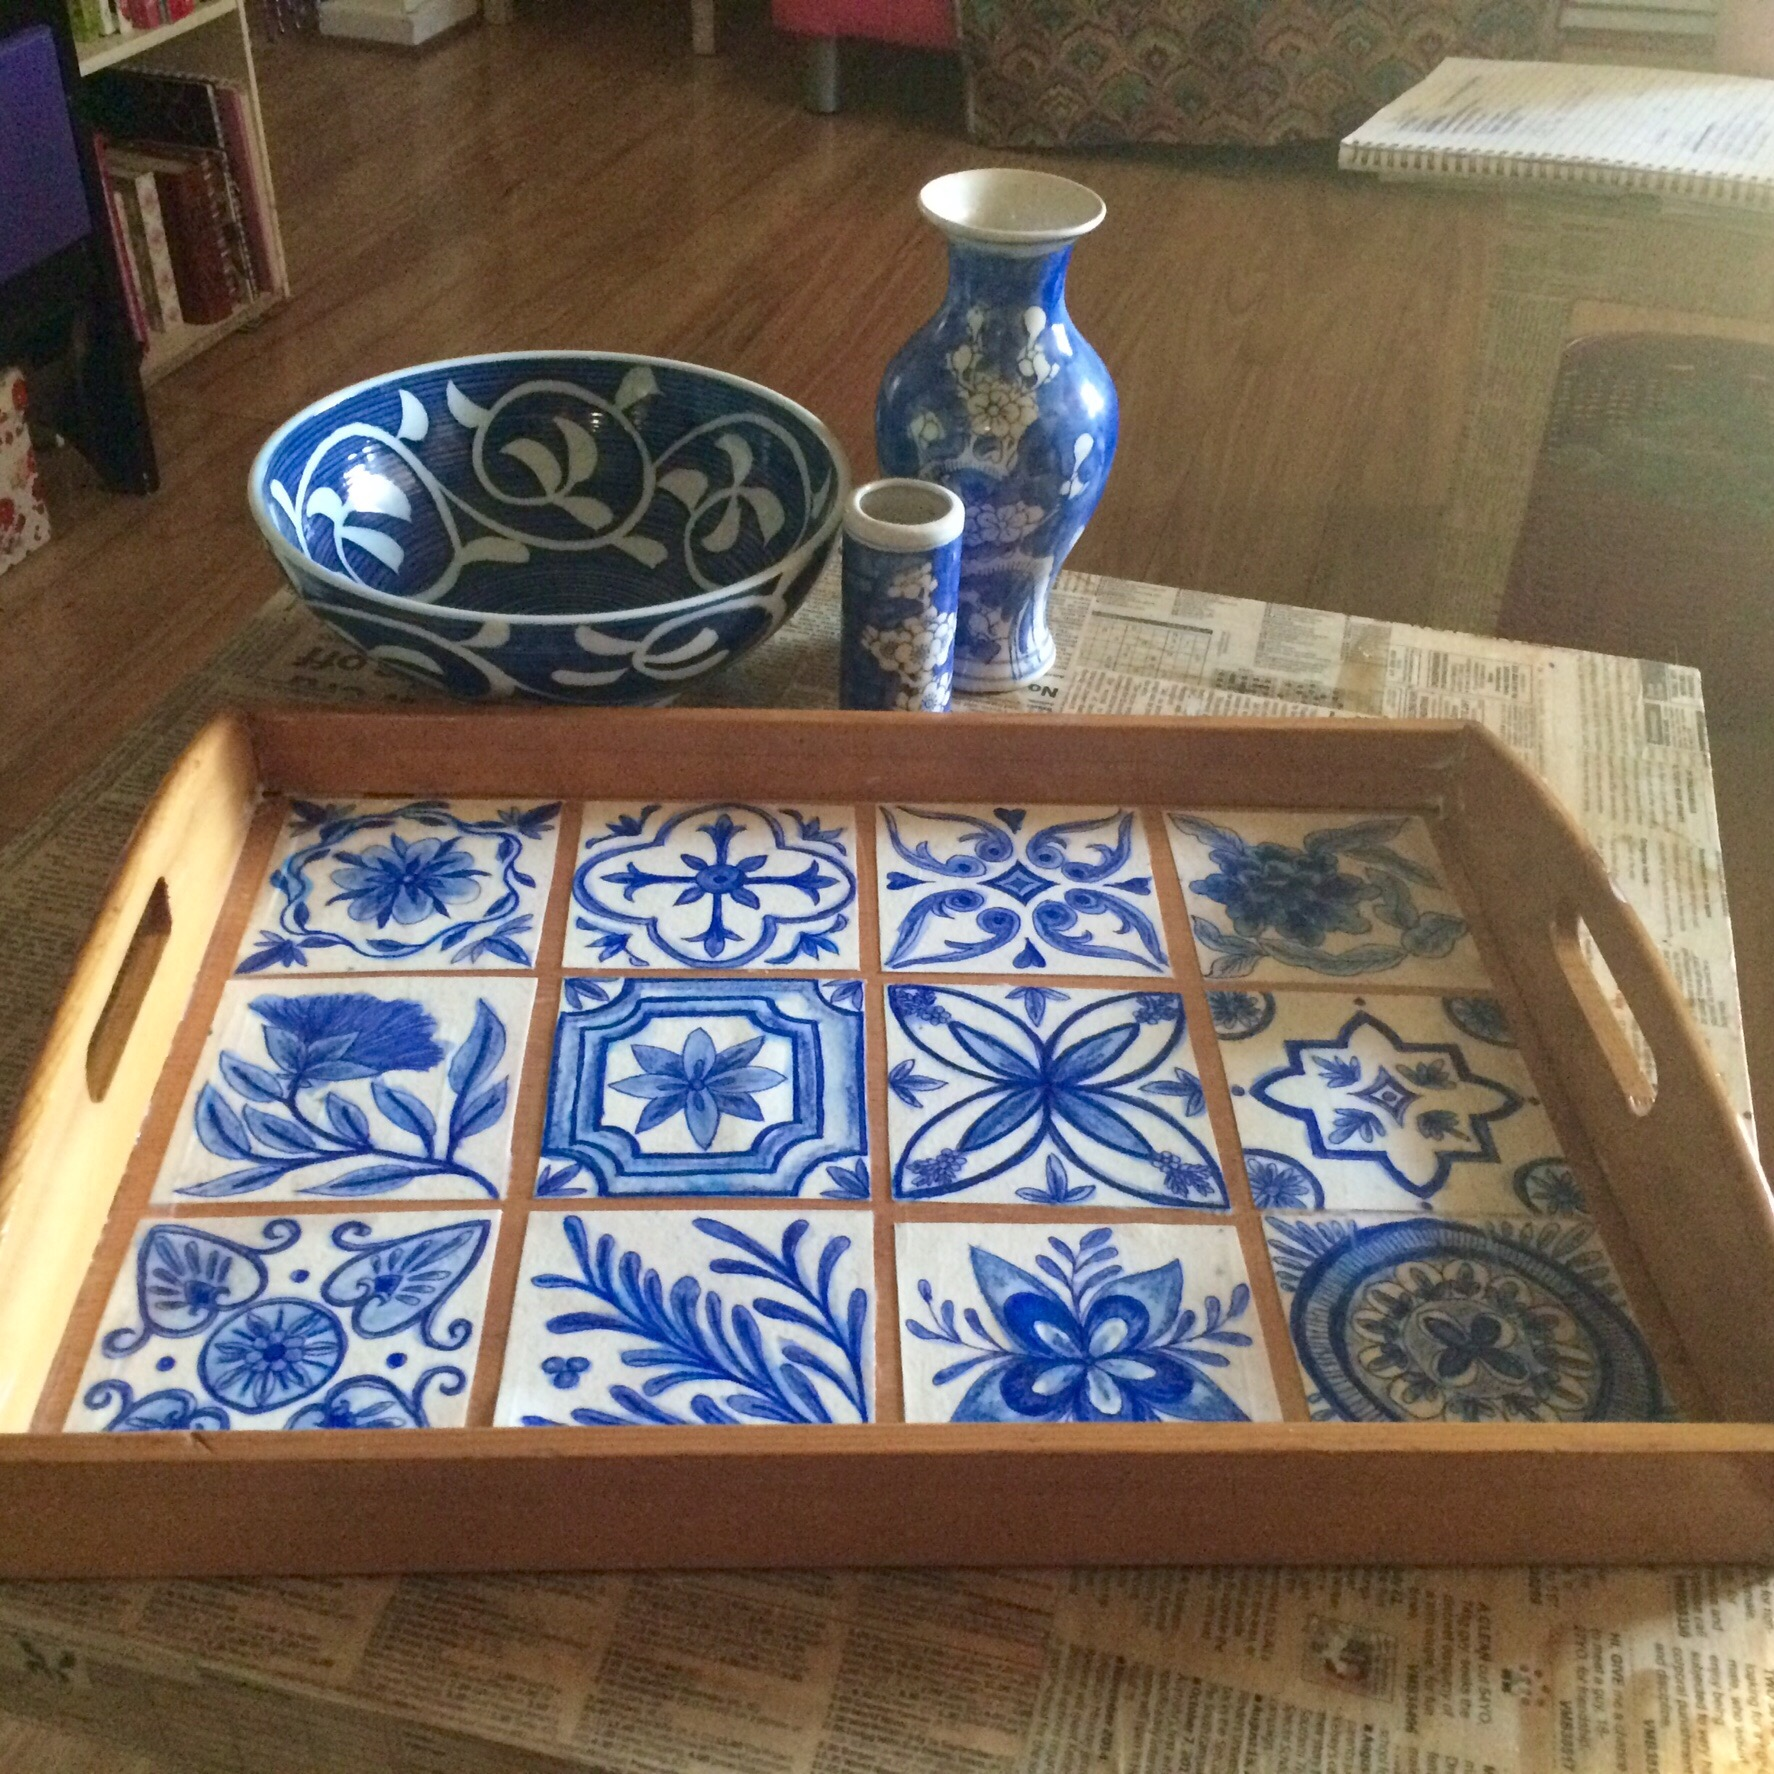 Blue and White Tile Tray | Aixie's Space